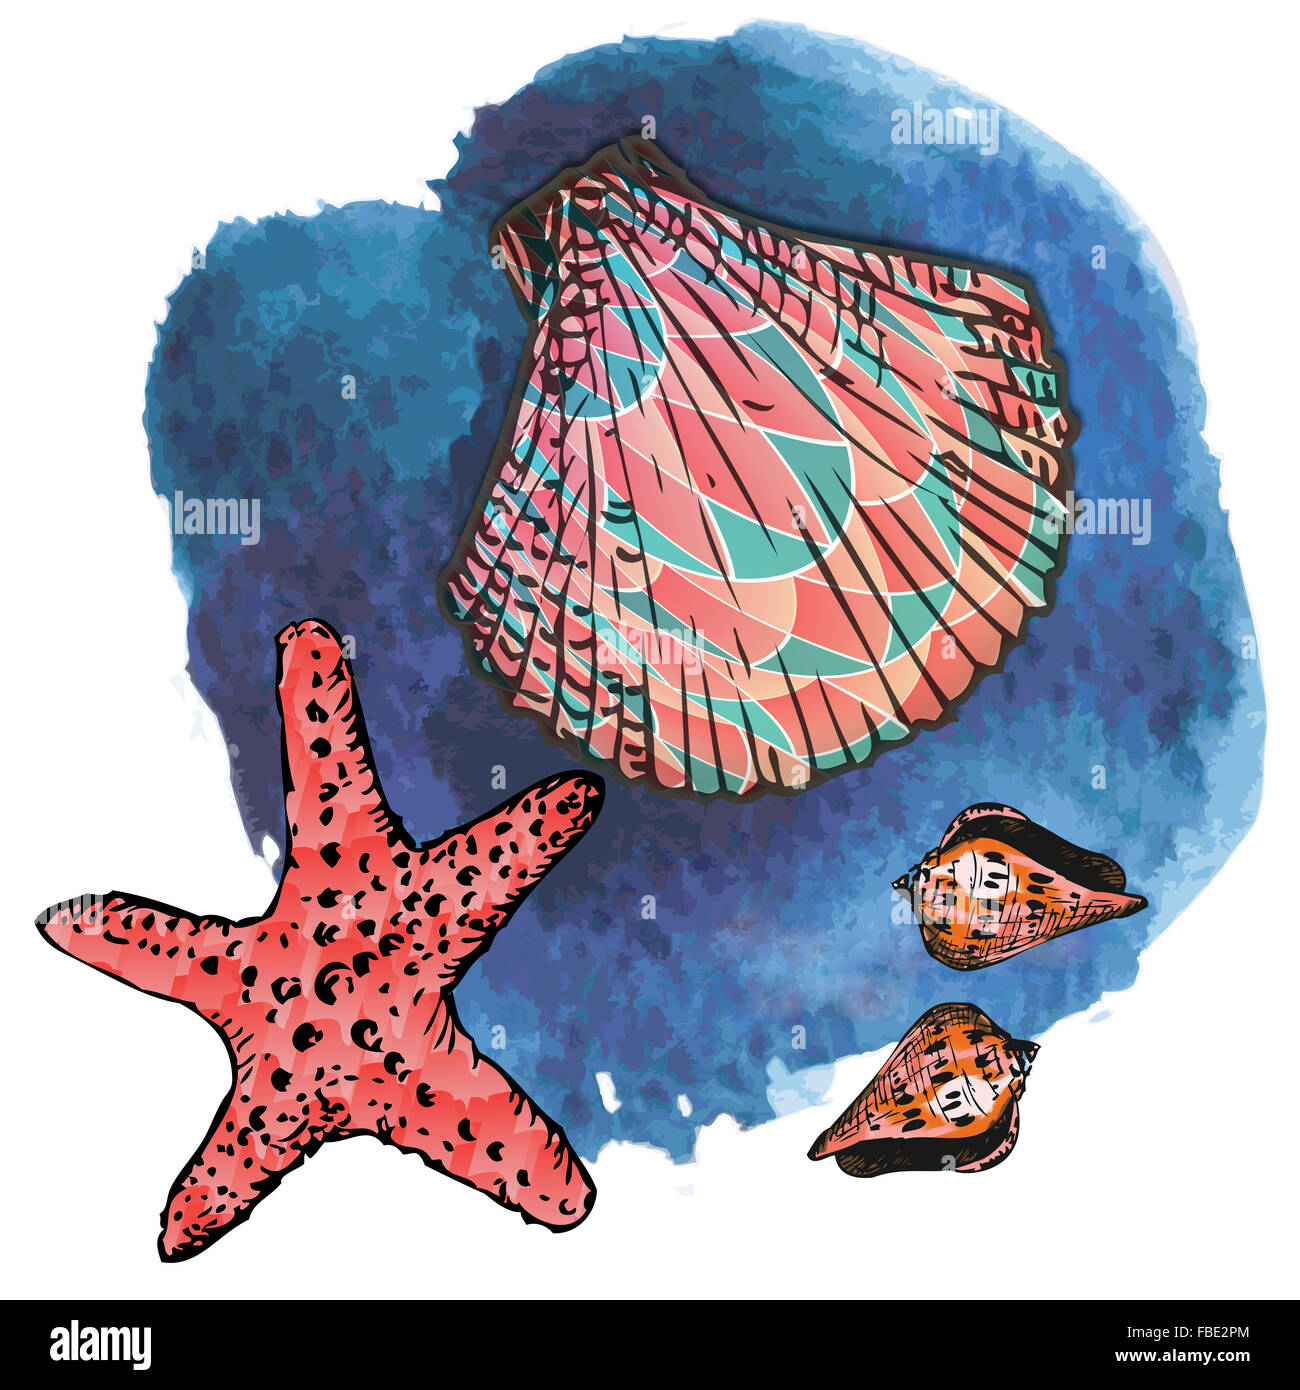 Seashells and starfish on semitransparent blue background. Graphic design with sea life best suited for children. - Stock Image